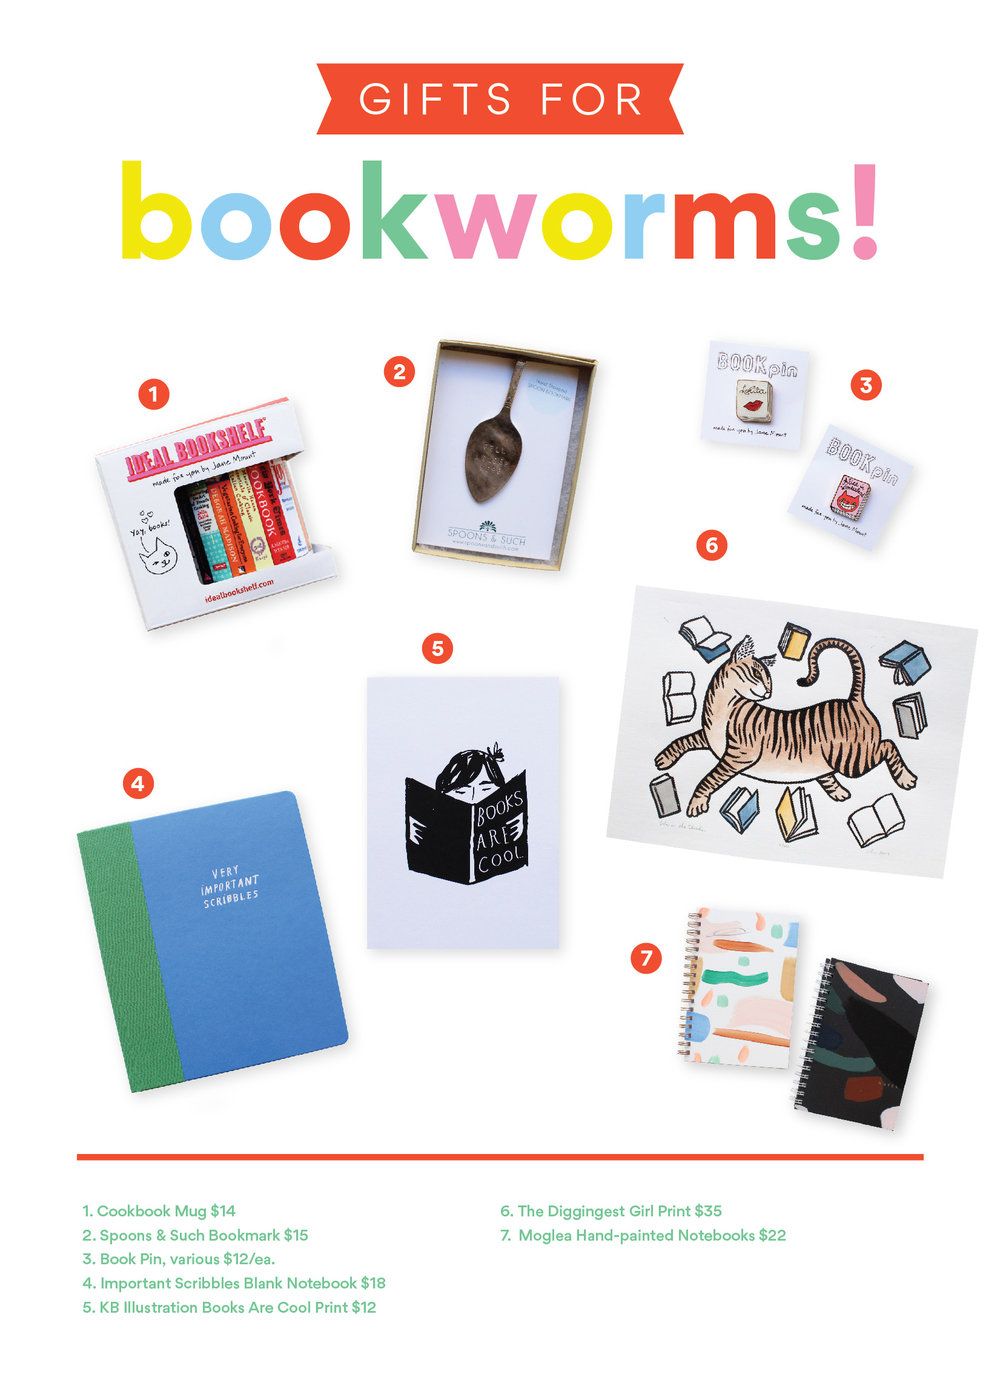 0373_Handzy_GiftGuide_Bookworms_A-1-01.jpg